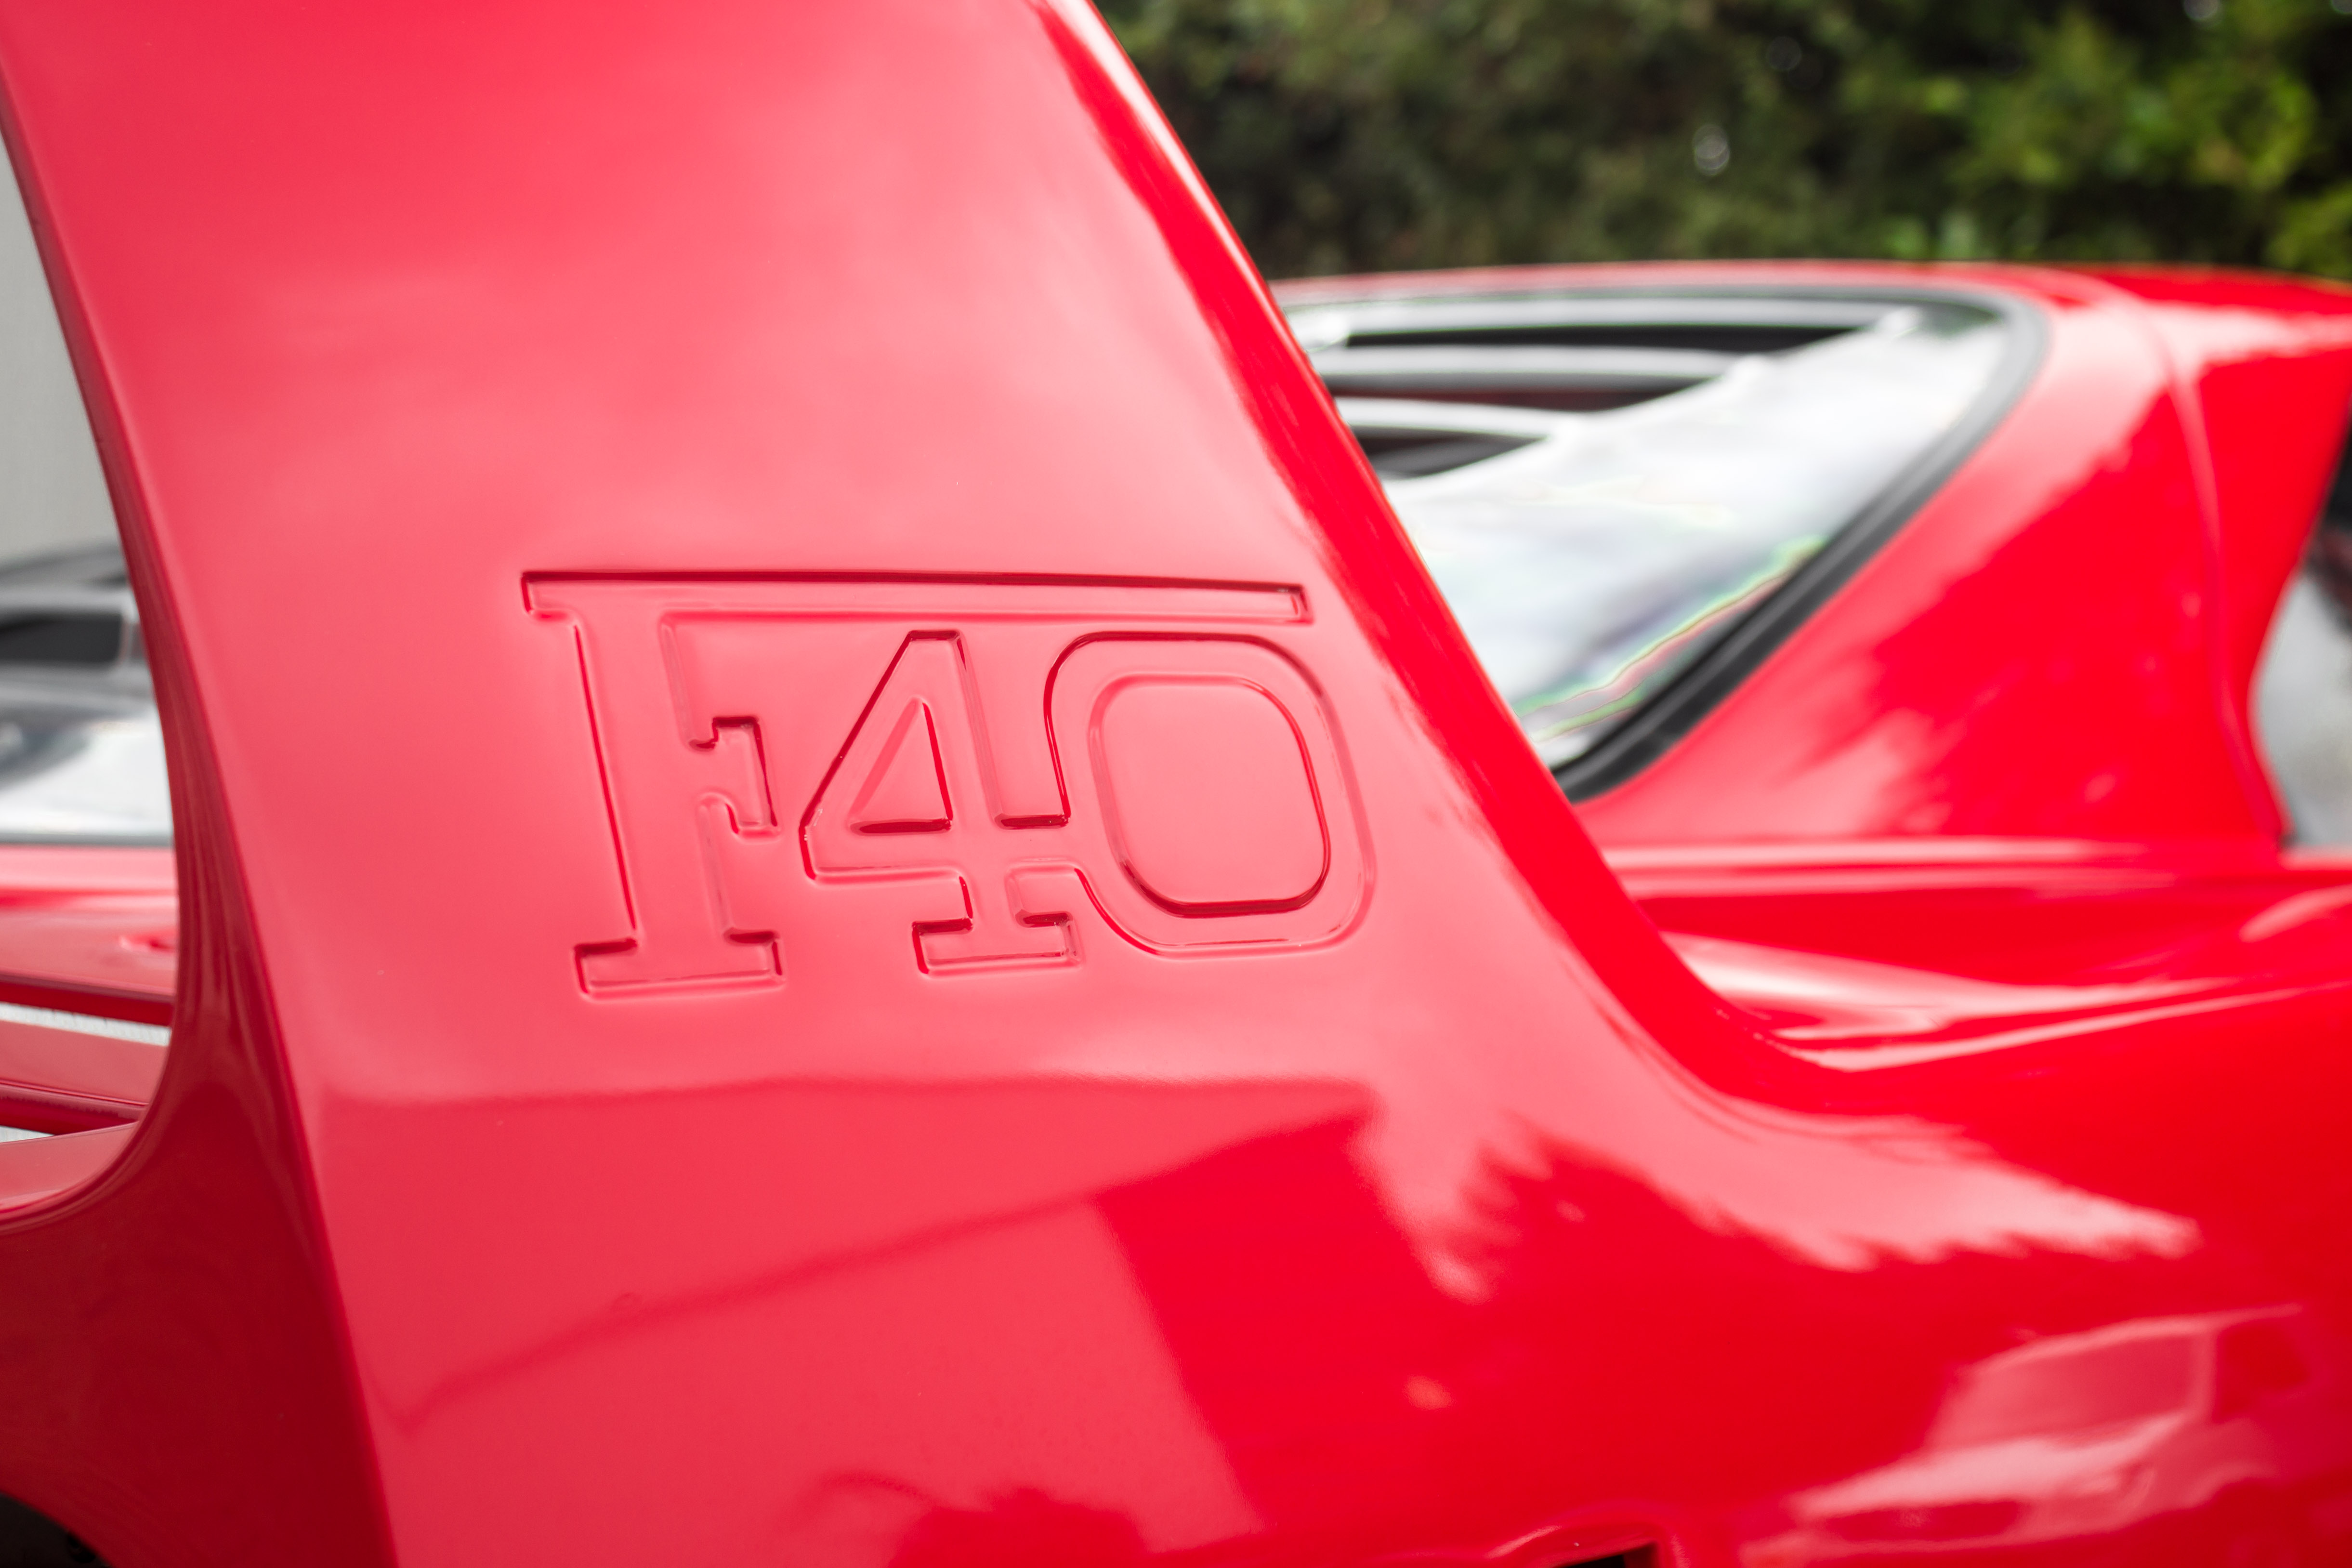 Ferrari F40 Rear Wing />